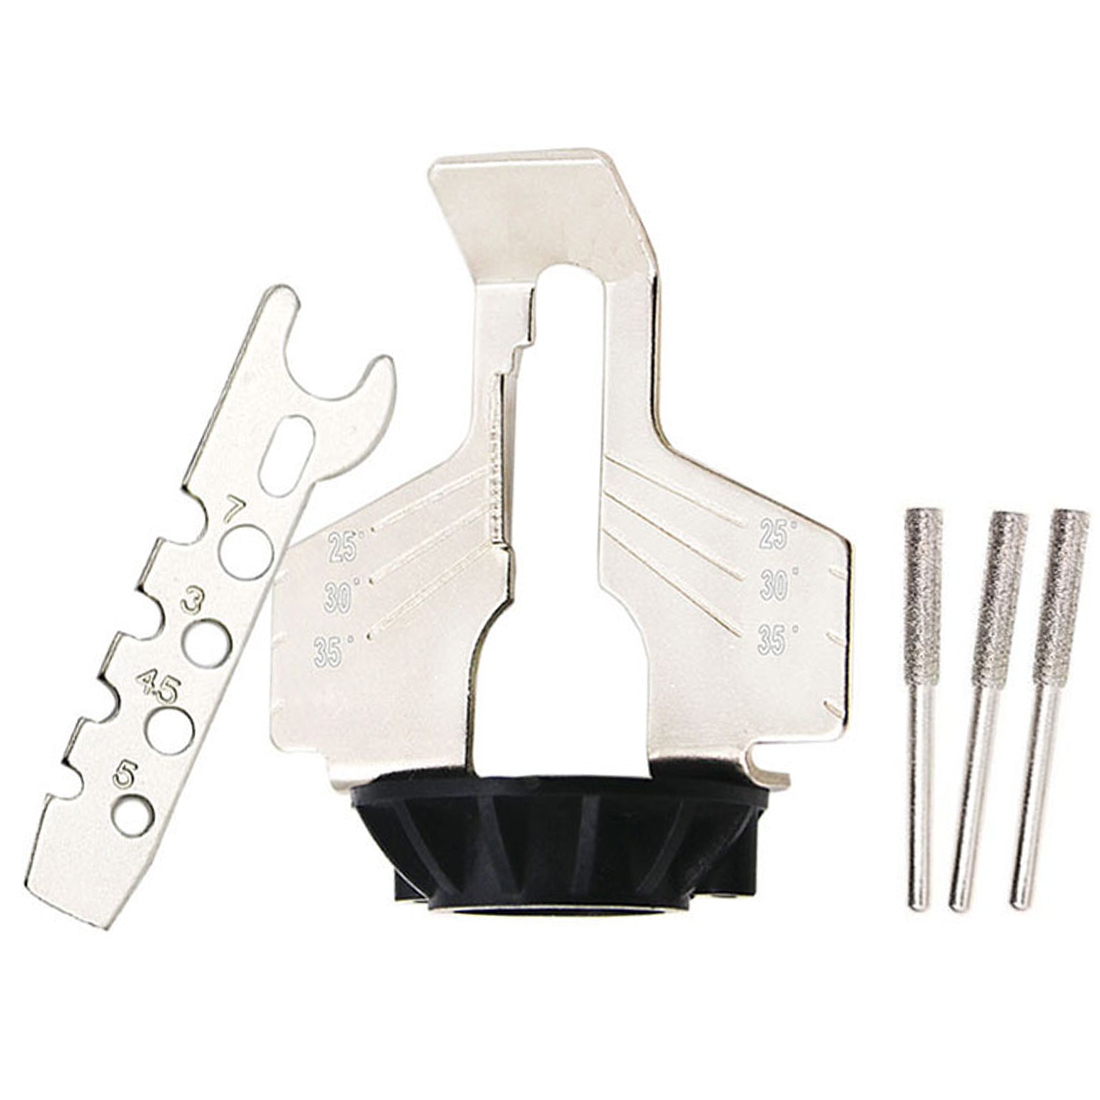 Electric Grinder Chain Saw Sharpening Attachment Set Power Tools Accessories  Hardware Tools